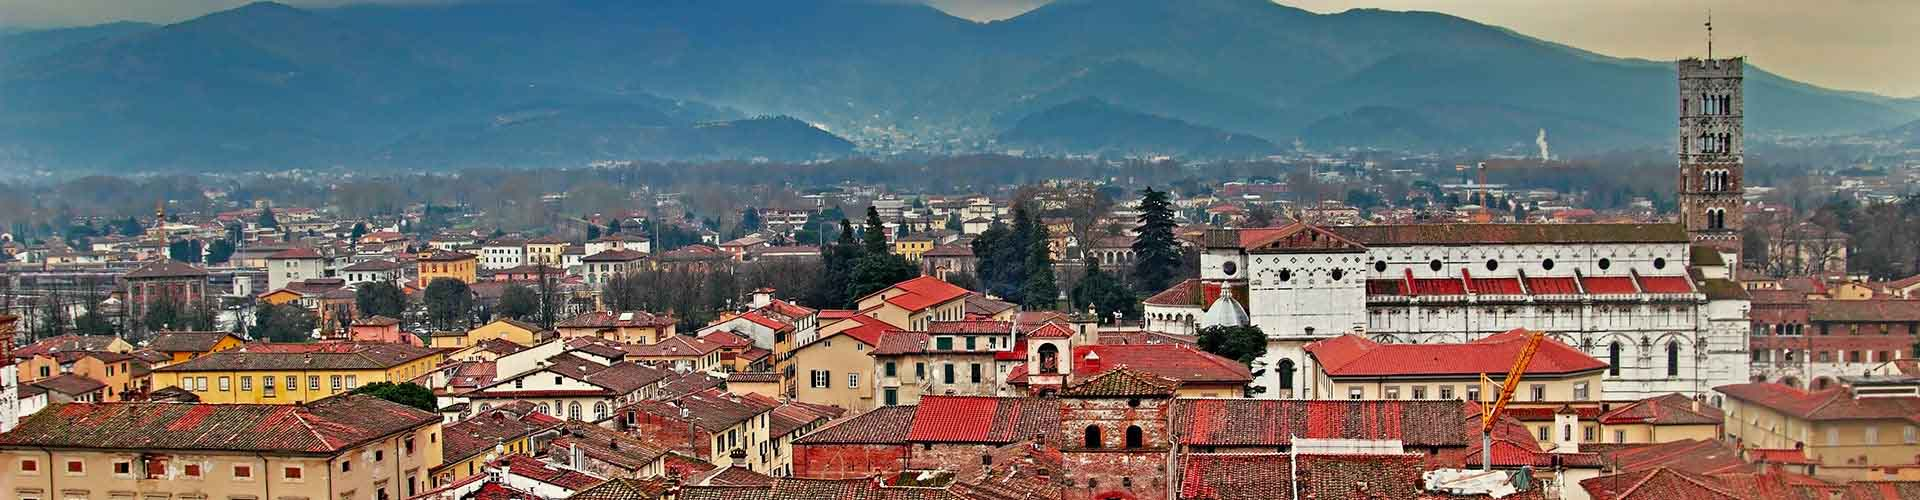 Lucca – Hostels in Lucca. Maps for Lucca, Photos and Reviews for each hostel in Lucca.